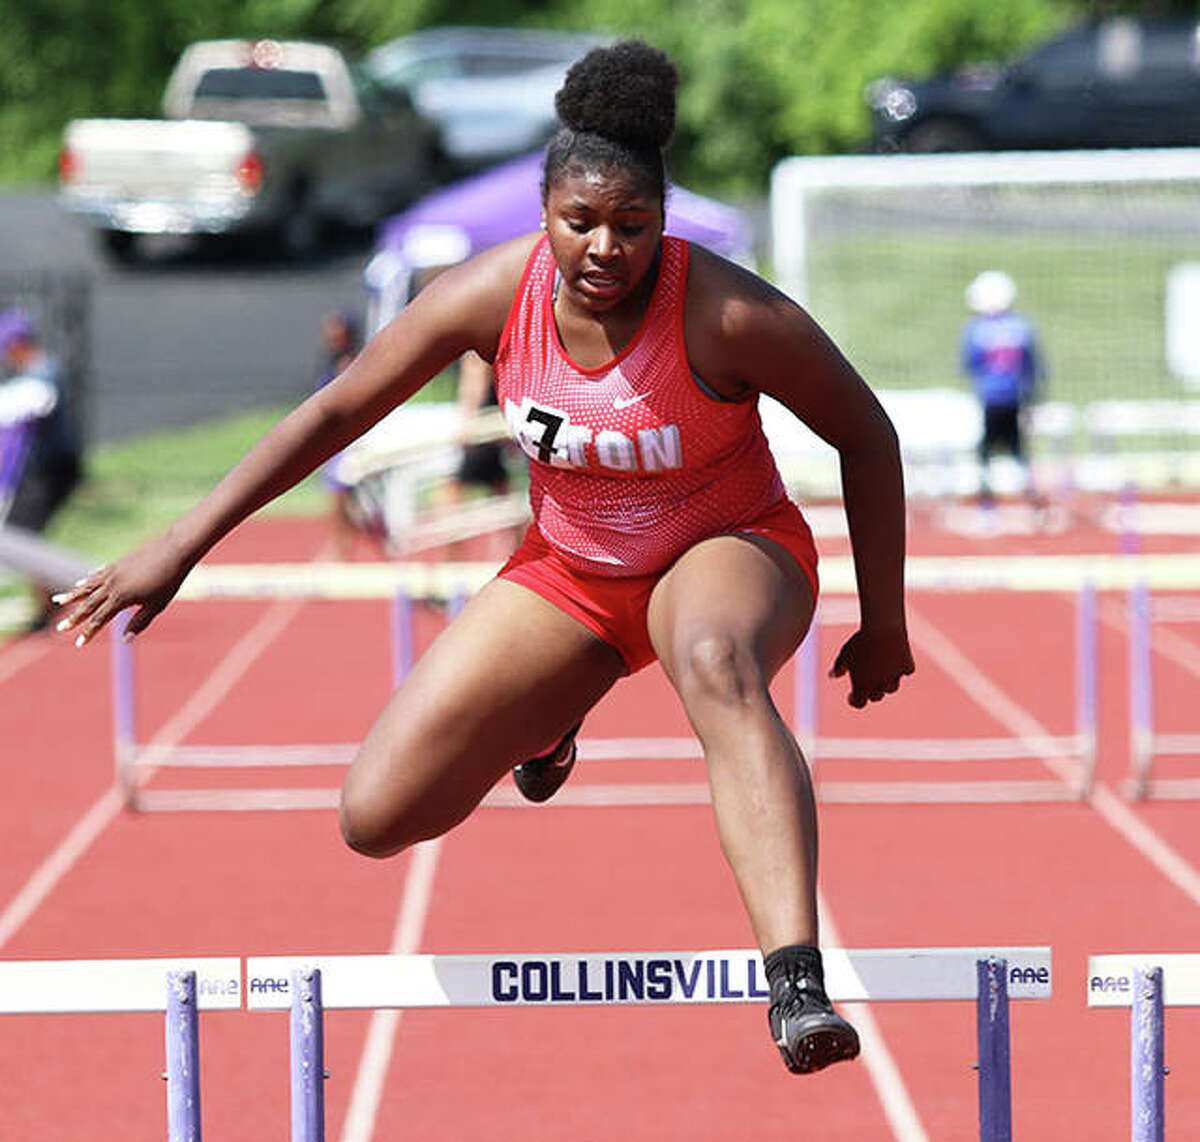 Alton's Savannah McMurray clears the final hurdle in the 300-meter hurdles Wednesday at the Southwestern Conference girls track meet at Collinsville.